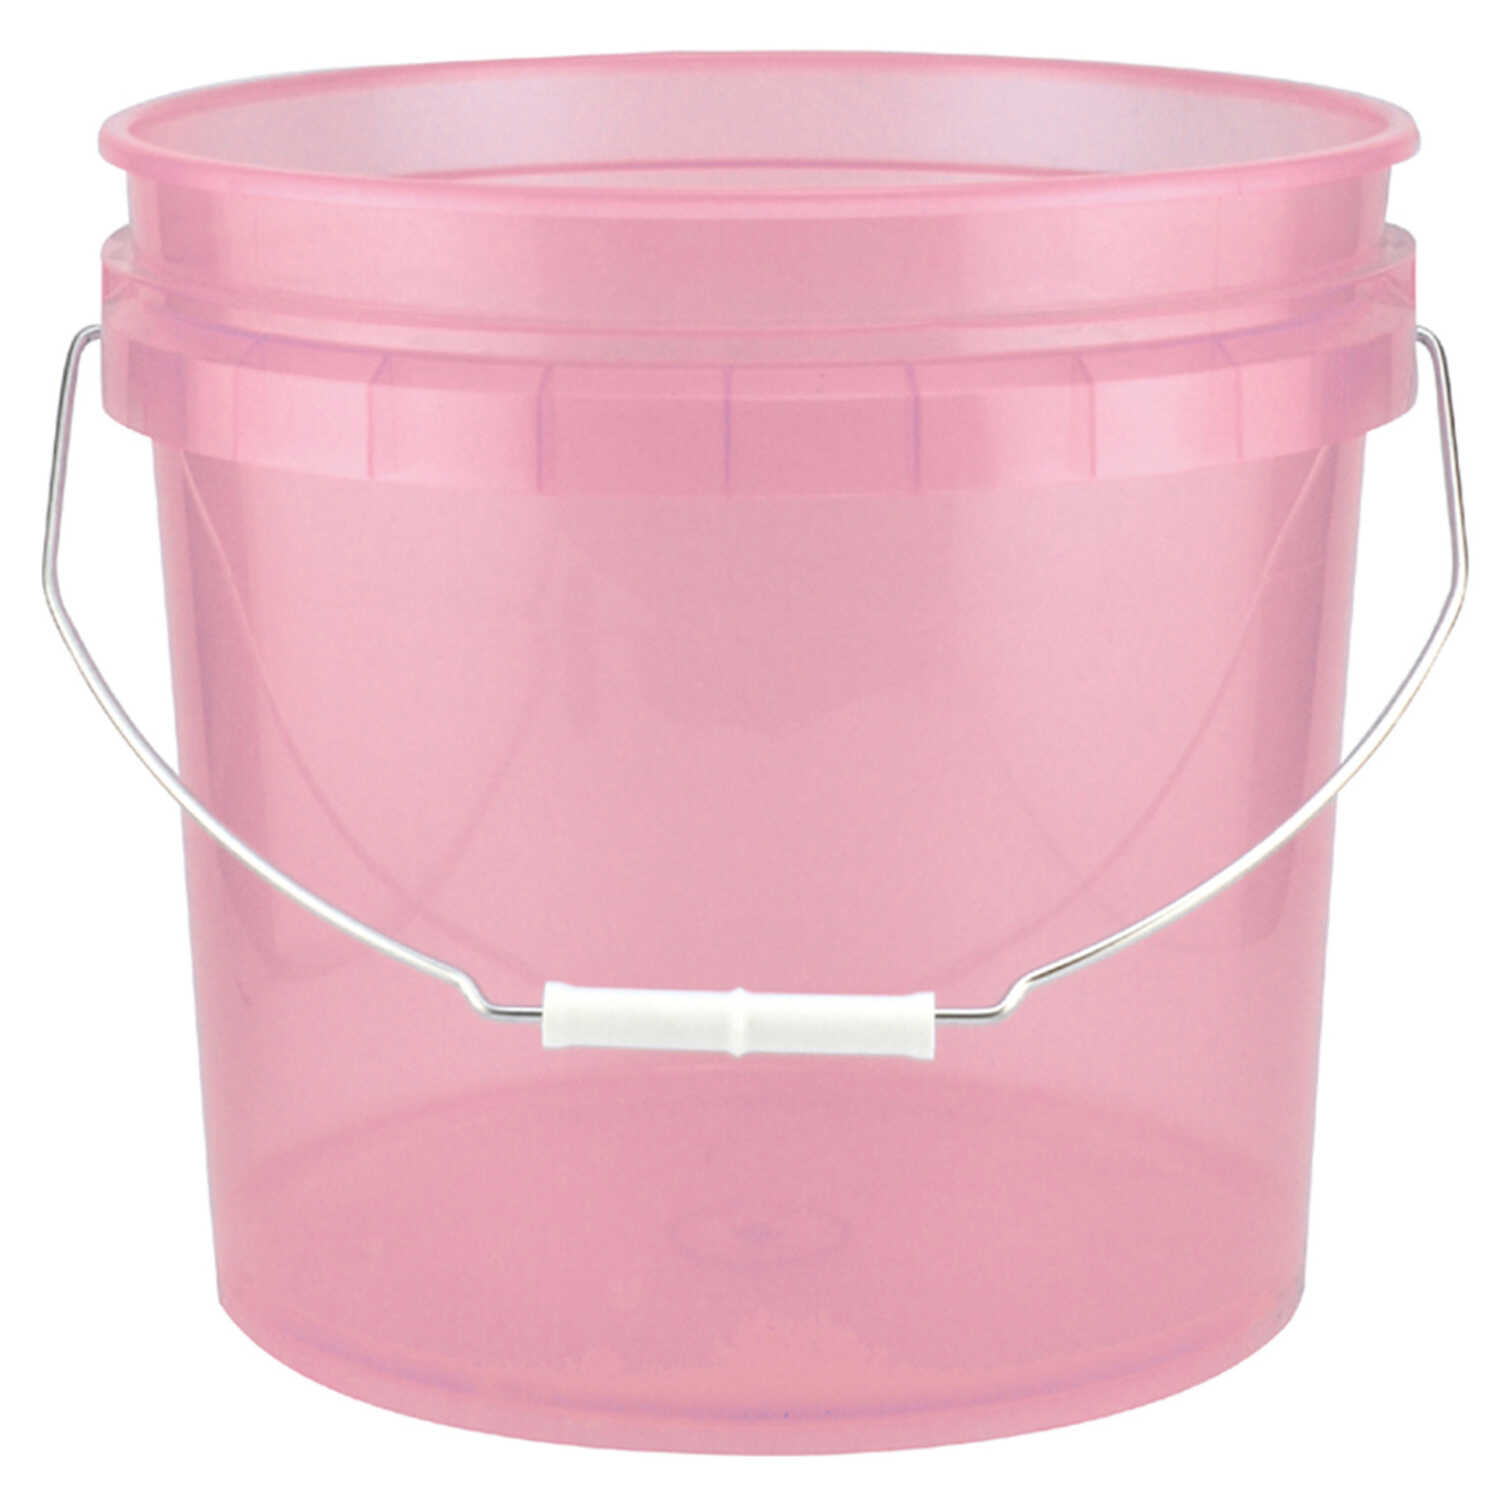 Leaktite  Red  3.5 gal. Plastic  Bucket